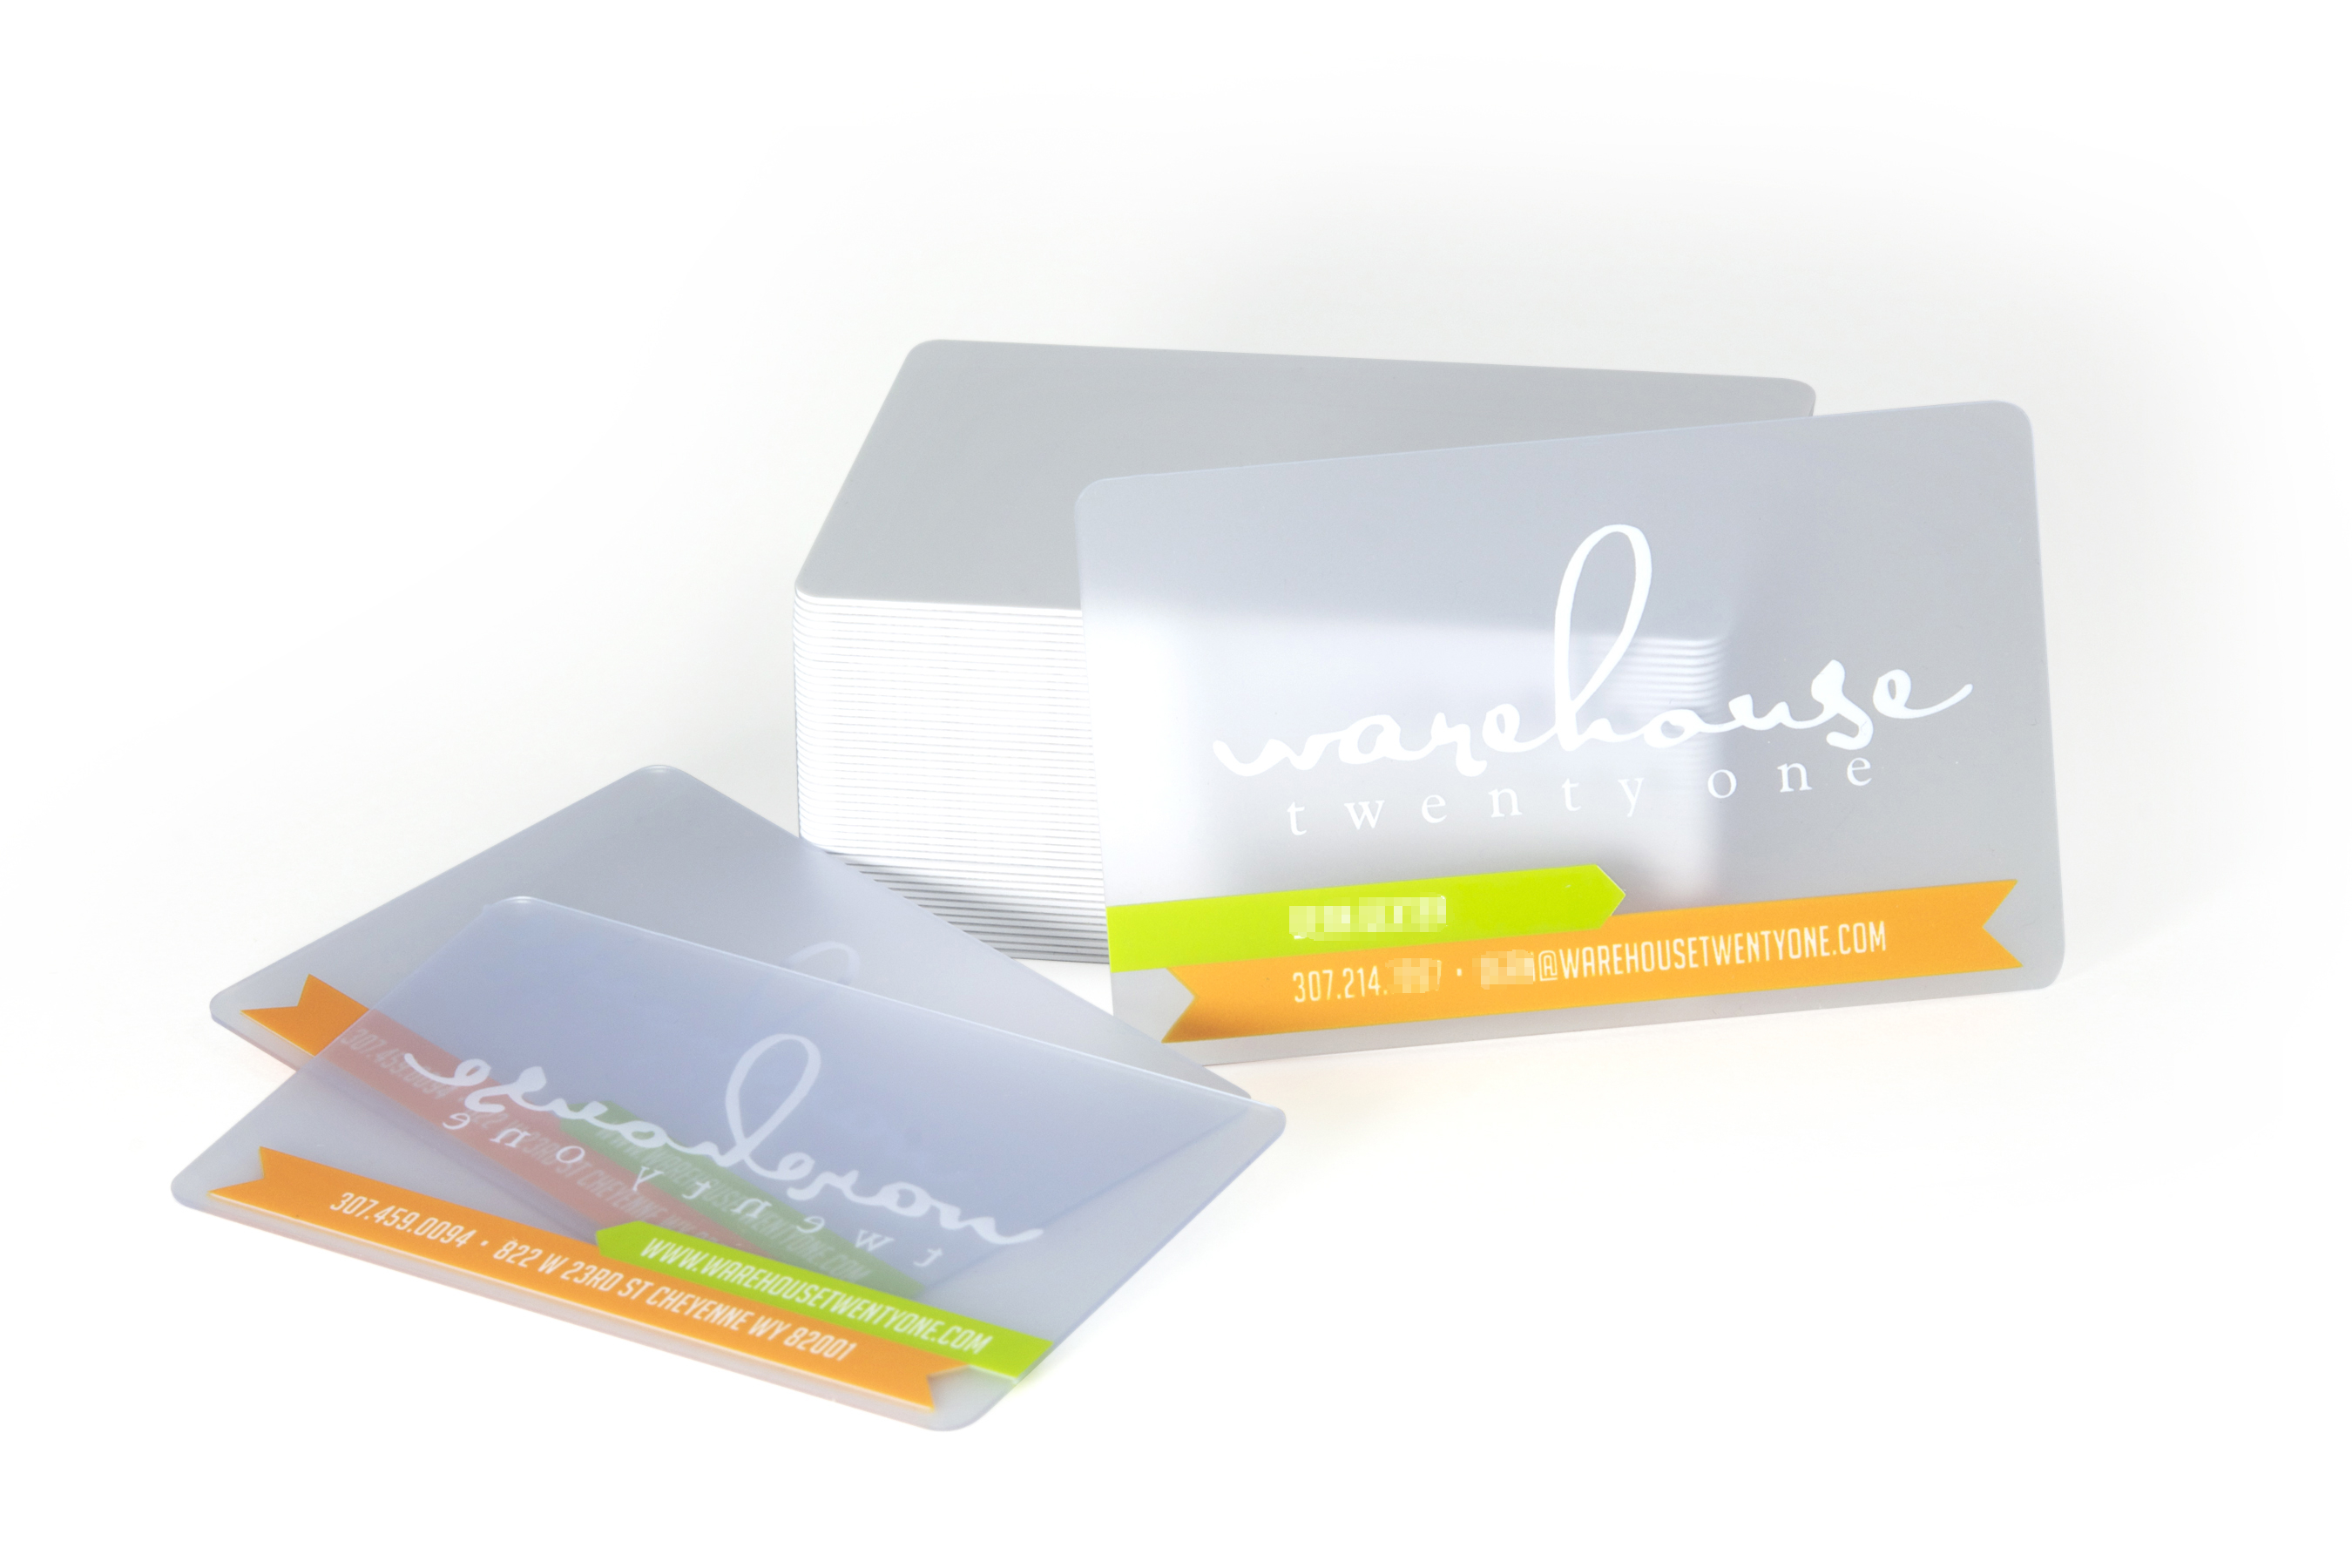 Translucent Frosted Plastic Business Card Slim Image